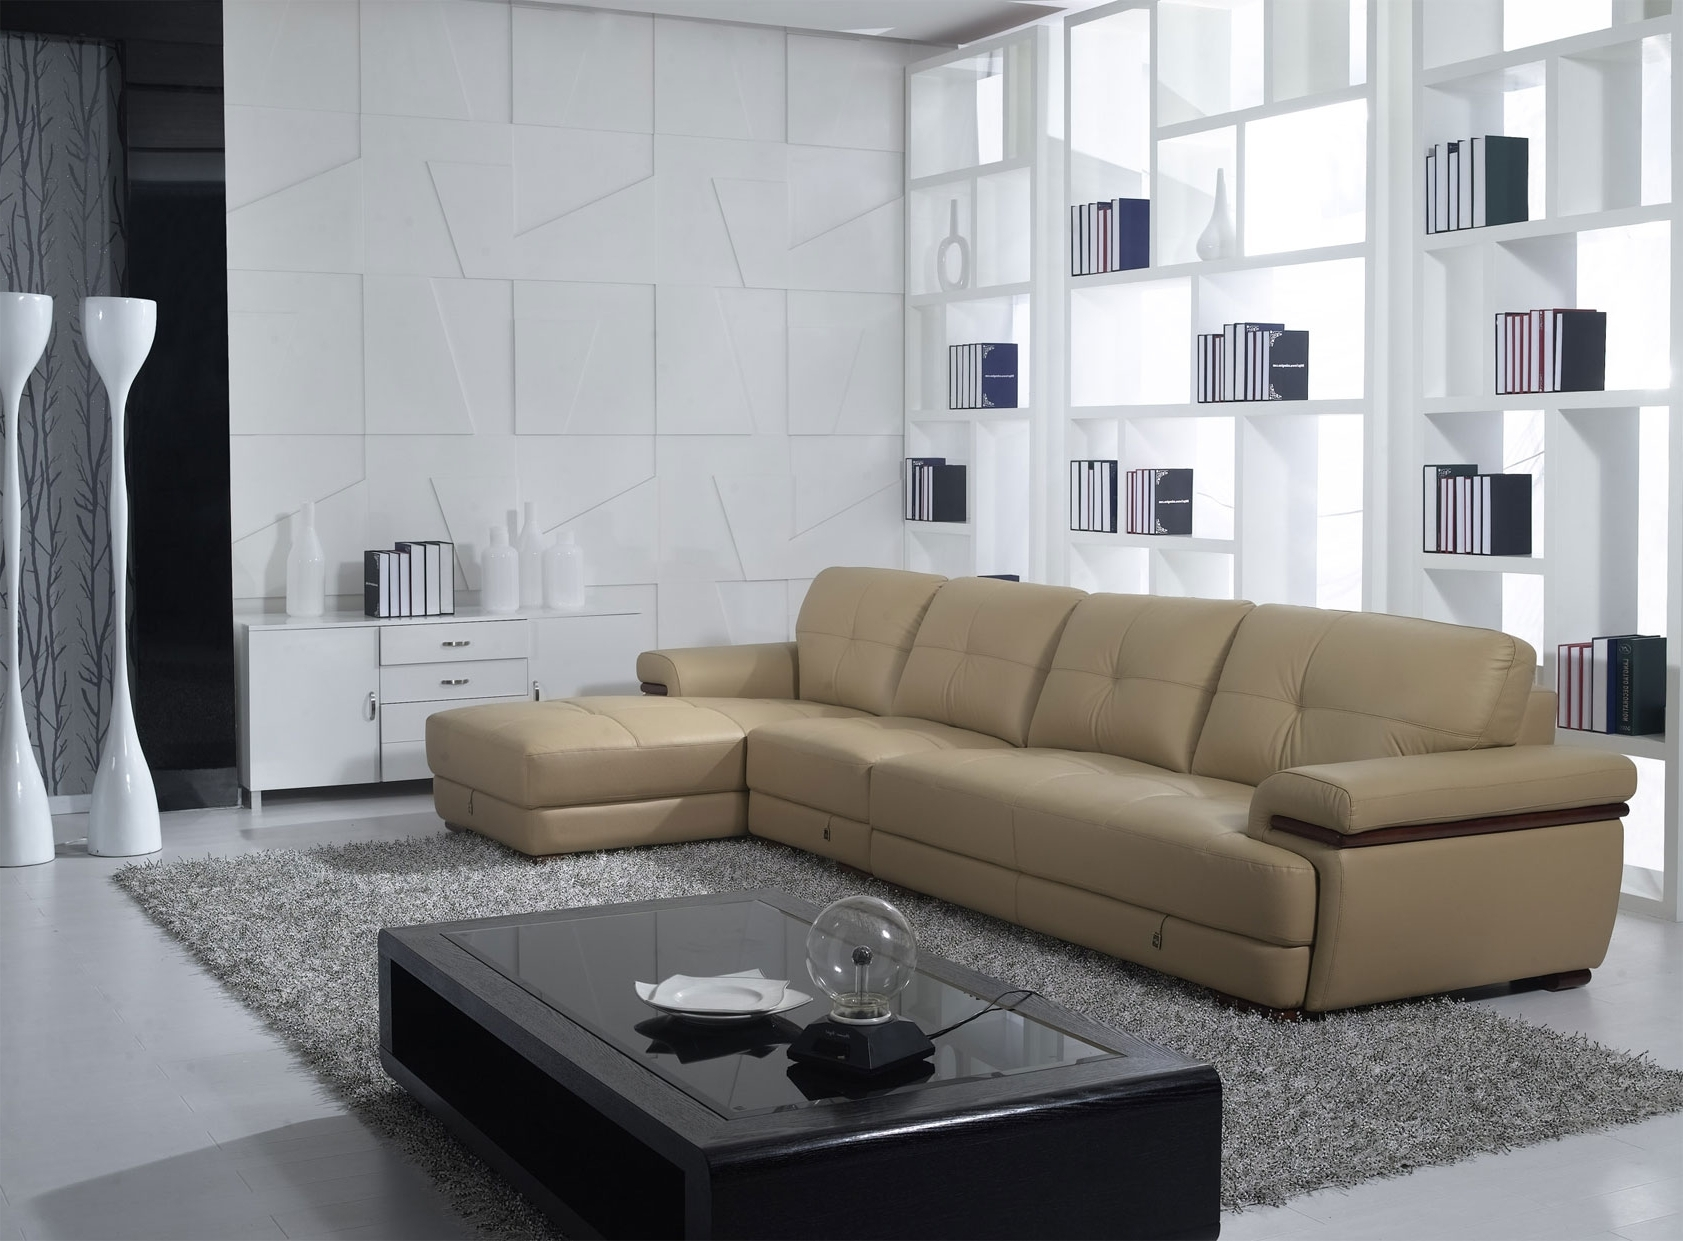 Fancy Quality Sectional Sofas 15 Sofas And Couches Ideas With With Regard To Latest High Quality Sectional Sofas (View 5 of 15)